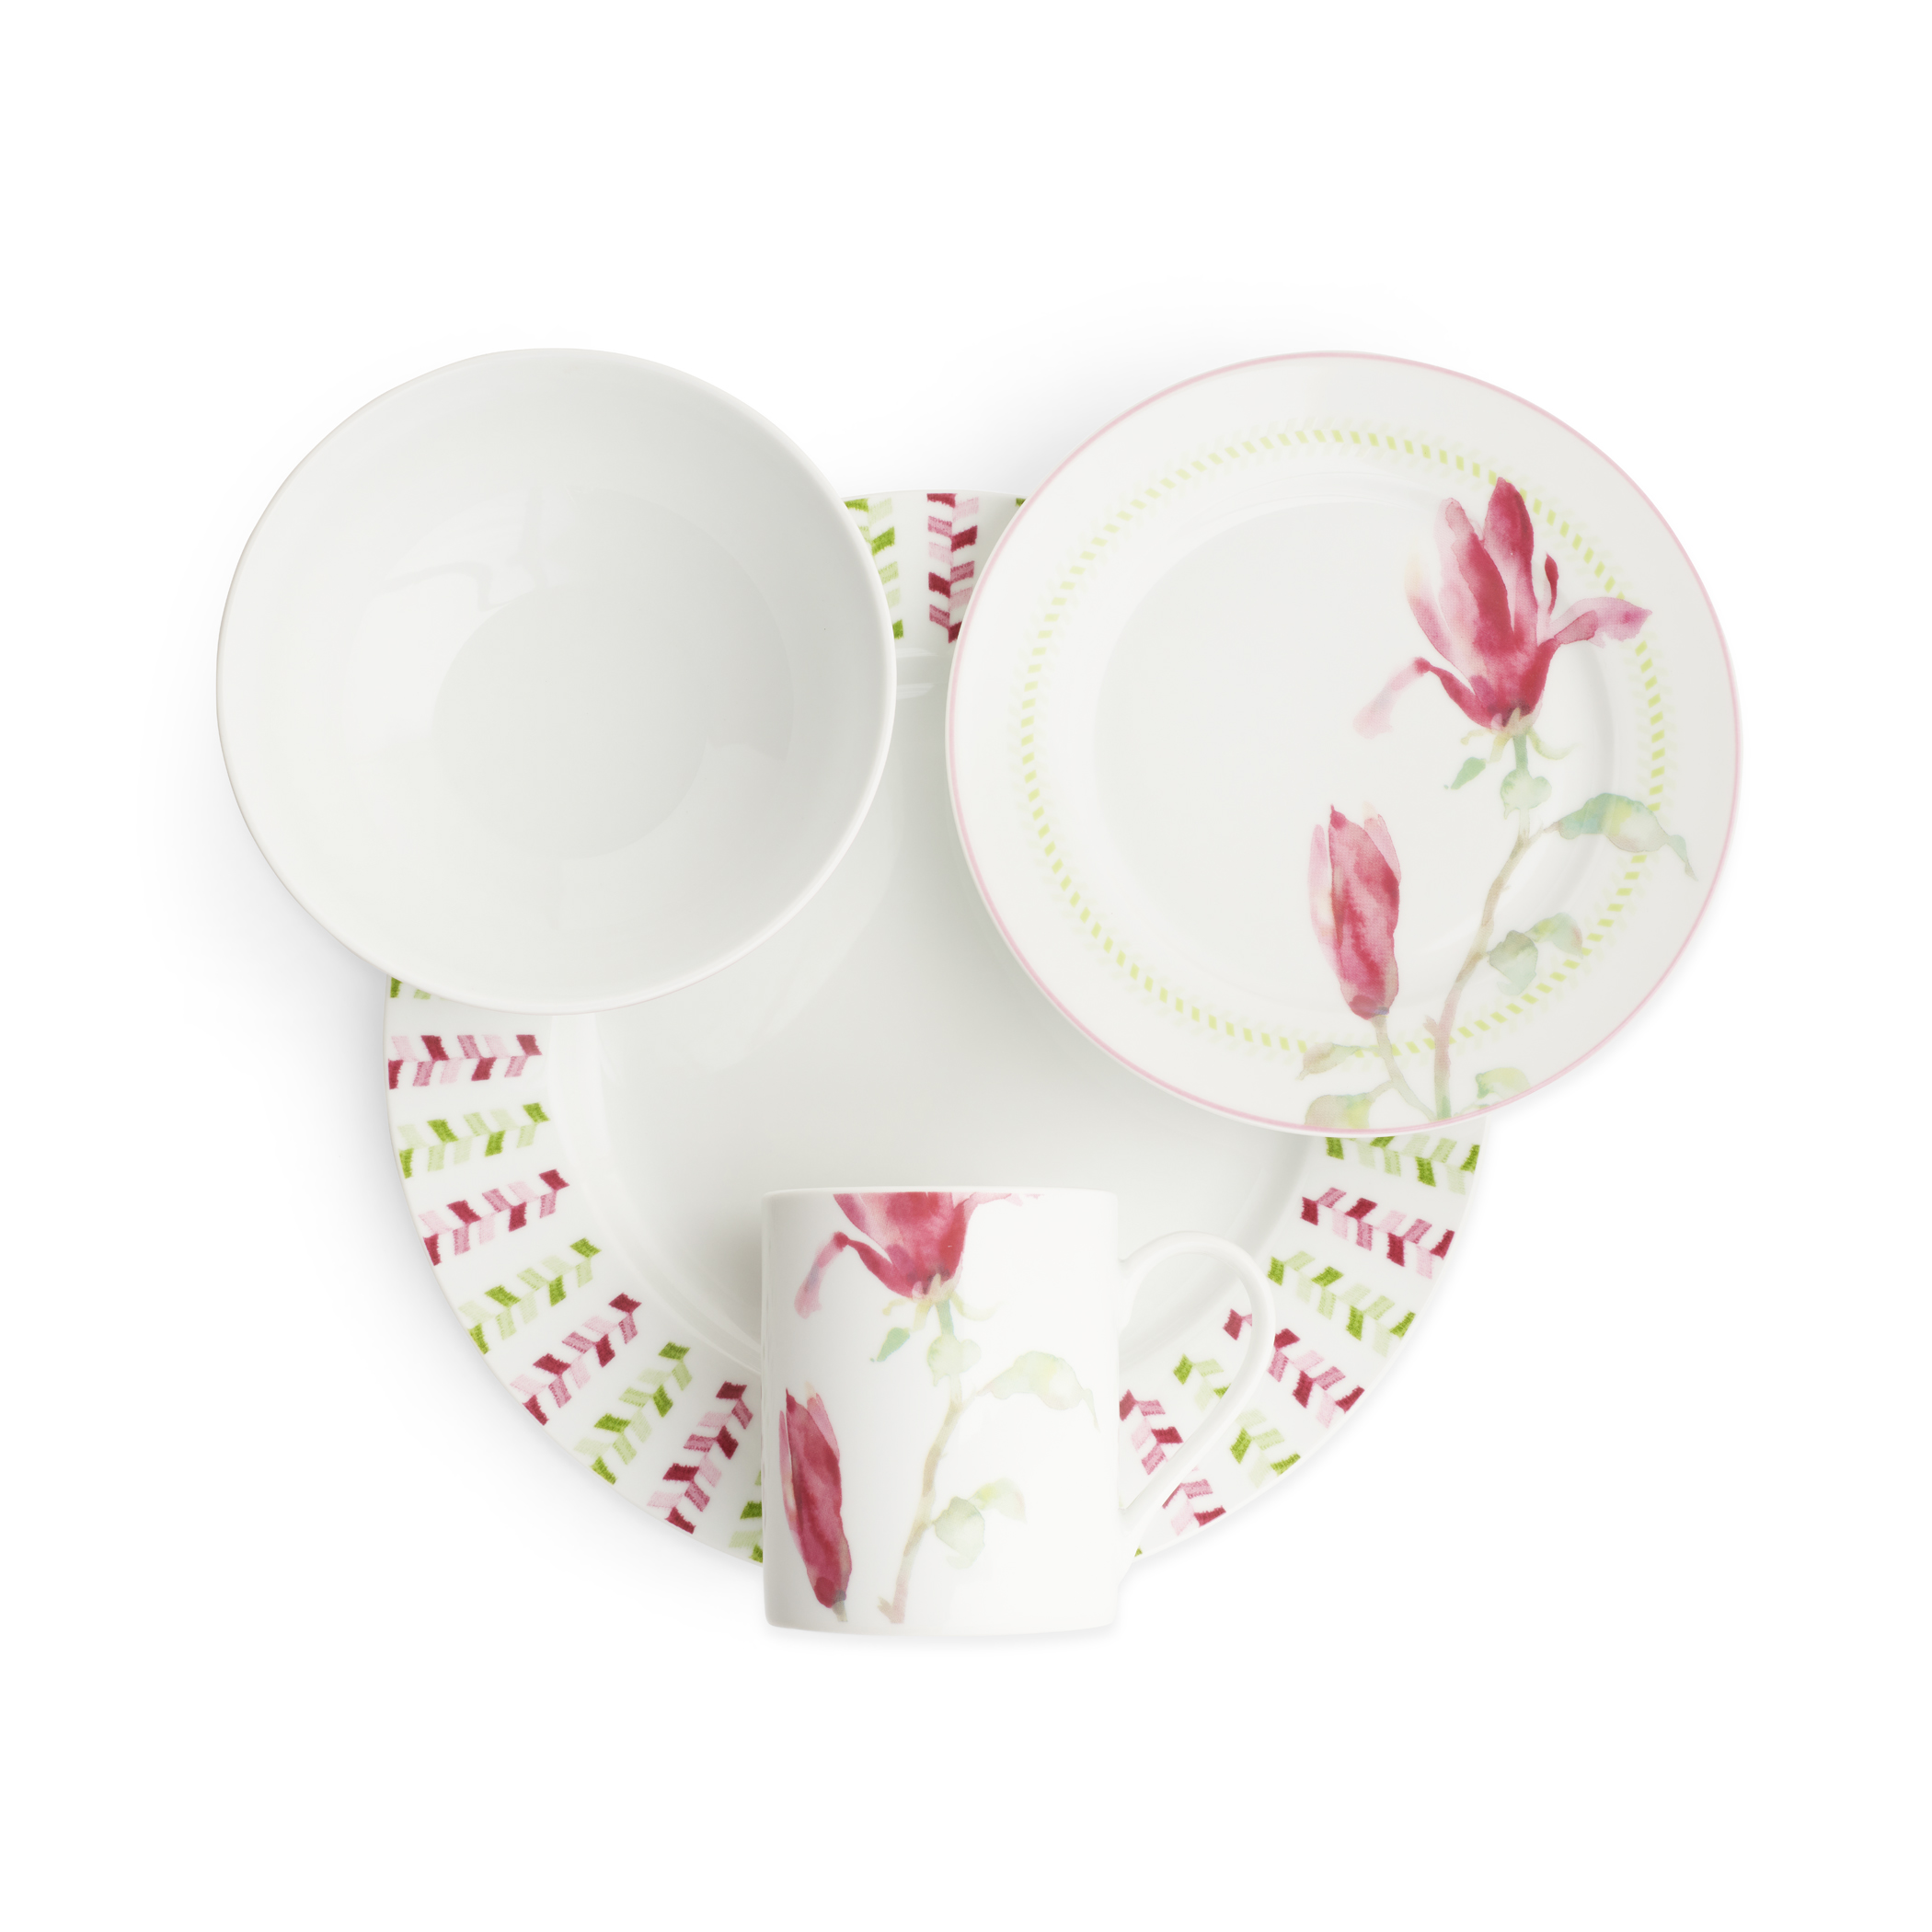 Spode Home Magnolia Haze 16 Piece SET image number 2